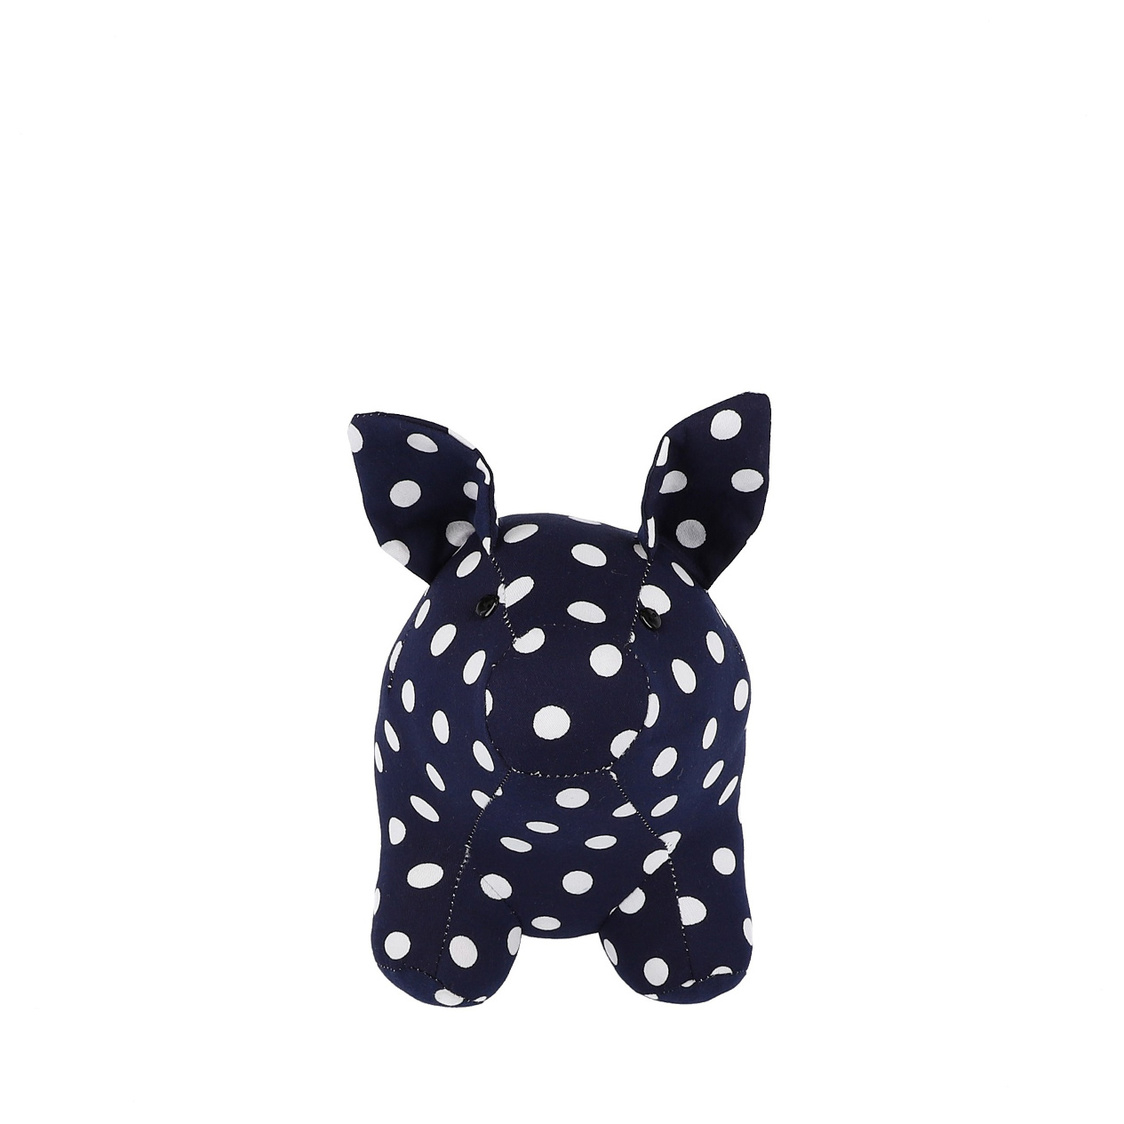 Mascot Pig Decoration in Navy with Polka Dots